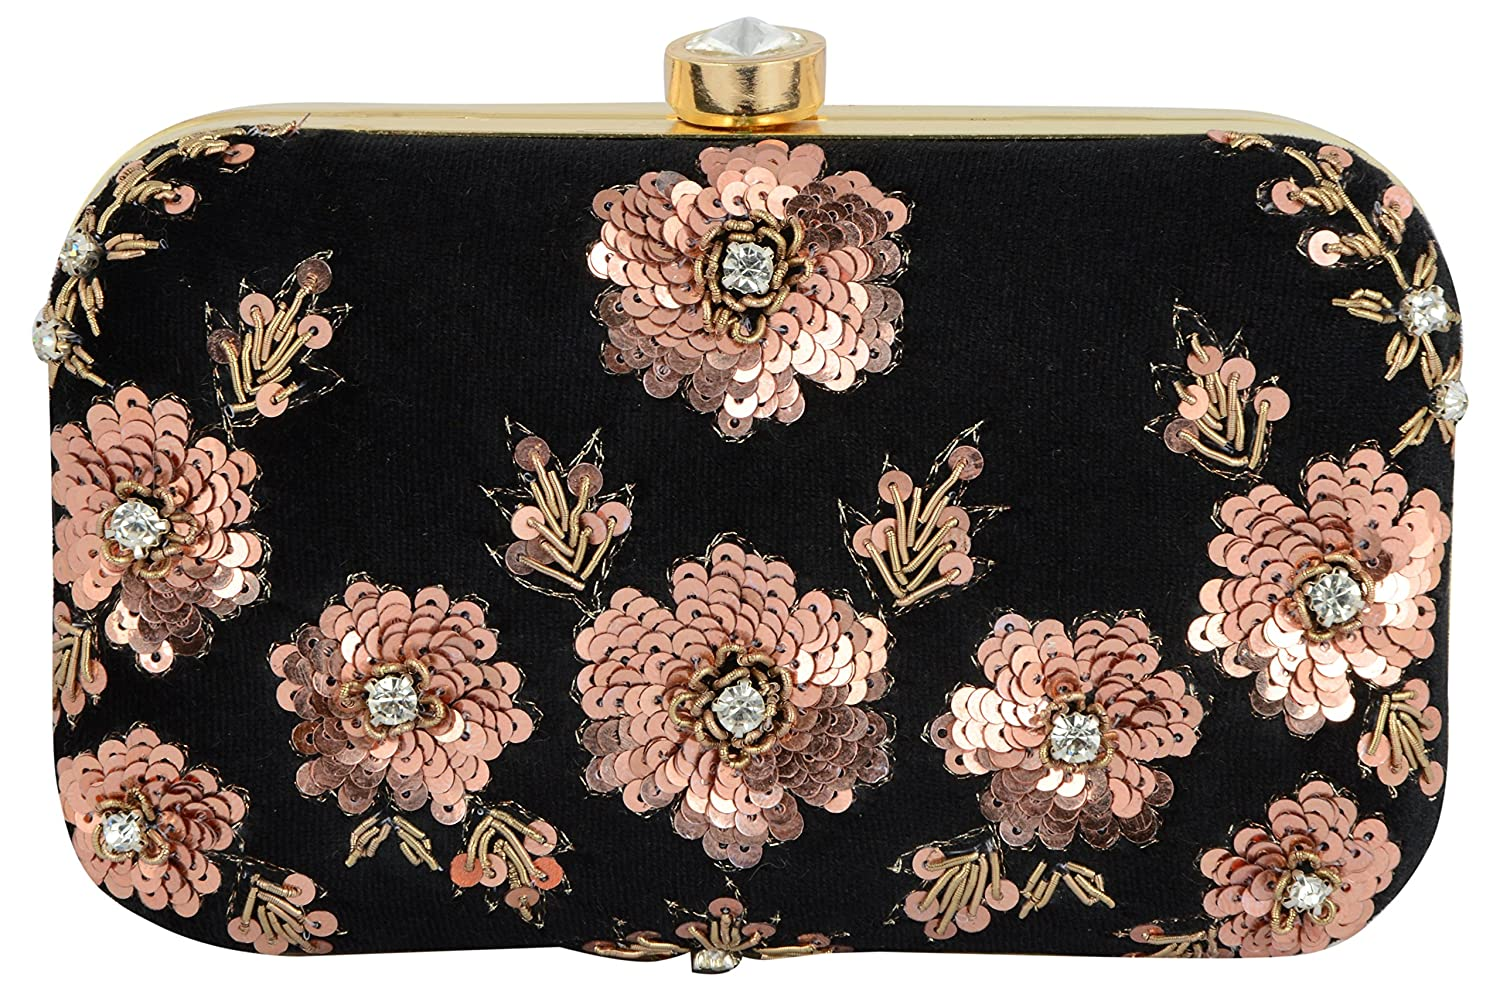 Tooba Women s Black Velvet Handicraft Hand Embroidered Box Clutch Bag Purse  for Bridal 9bb1c0ab07656